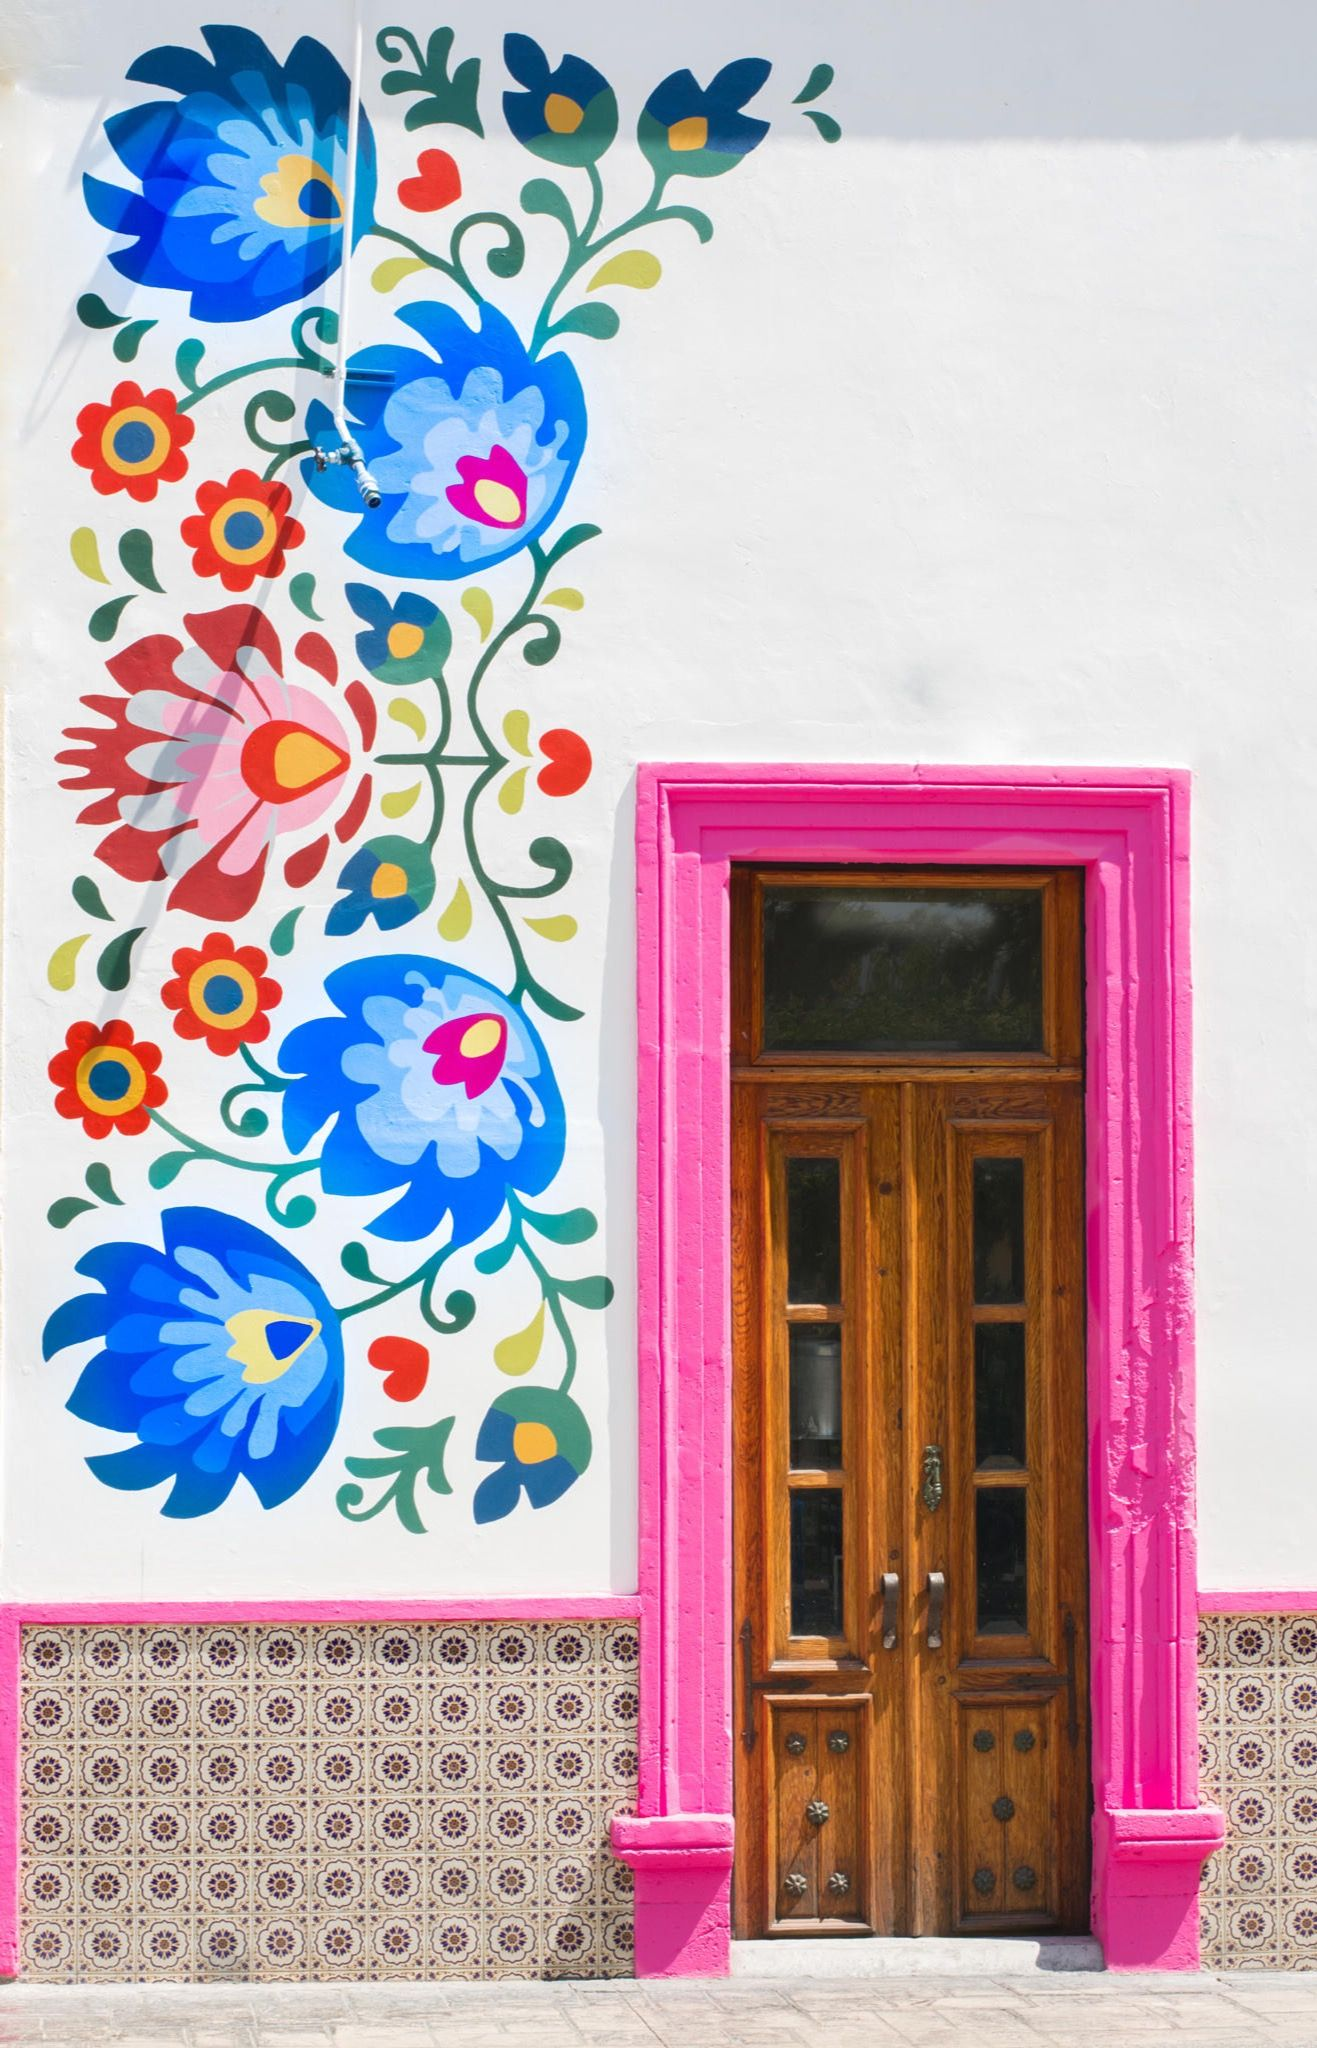 Aguascalientes Mexico Beautiful Doors Wall Painting Mexican Art